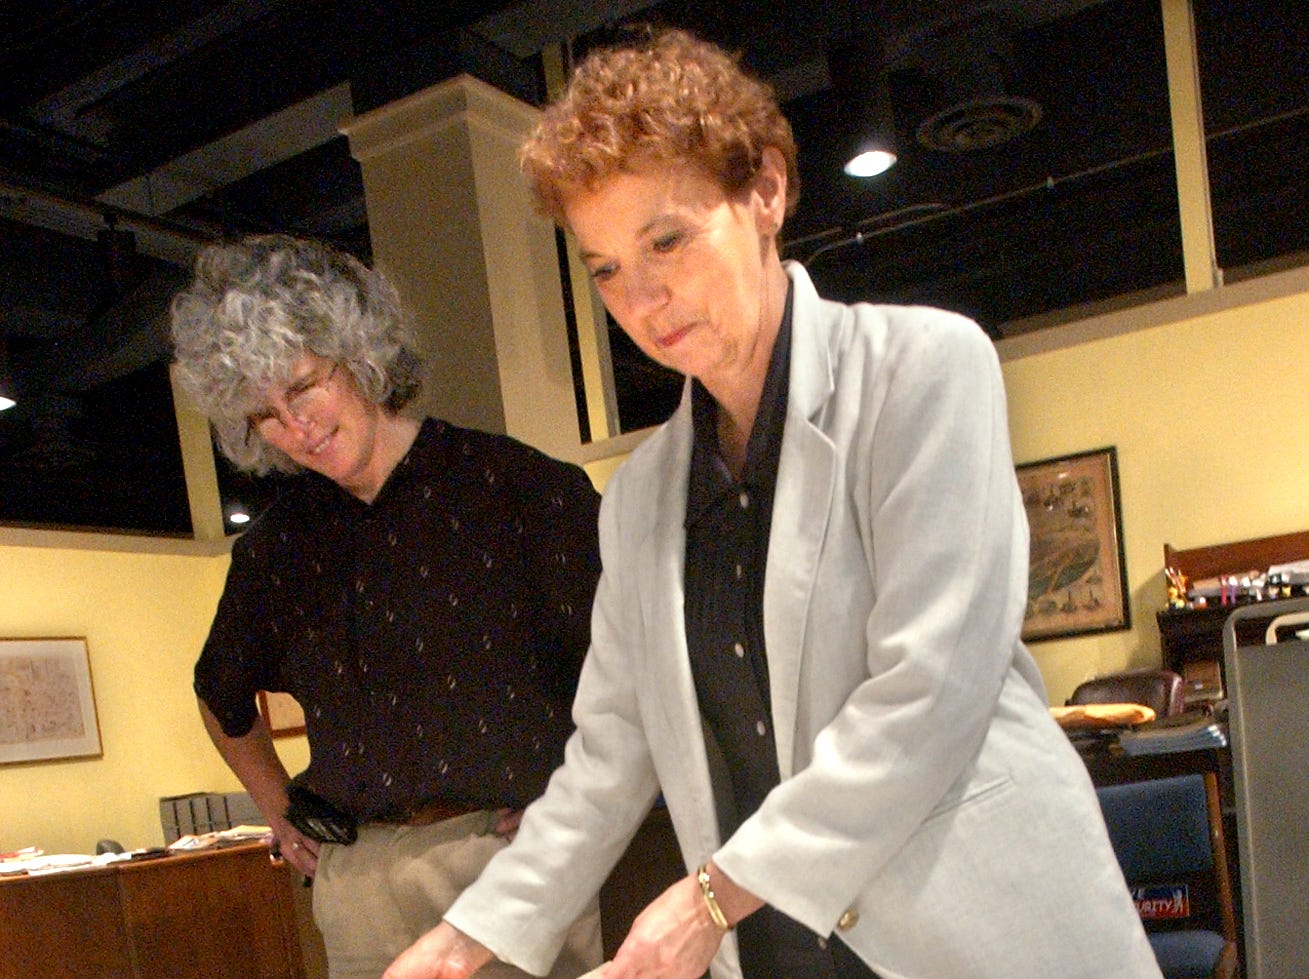 June Lloyd, right, the librarian and archivist with York County Heritage Trust, looks over a document with assistant librarian Lila Fourhman-Shaull in this 2005 file photo.